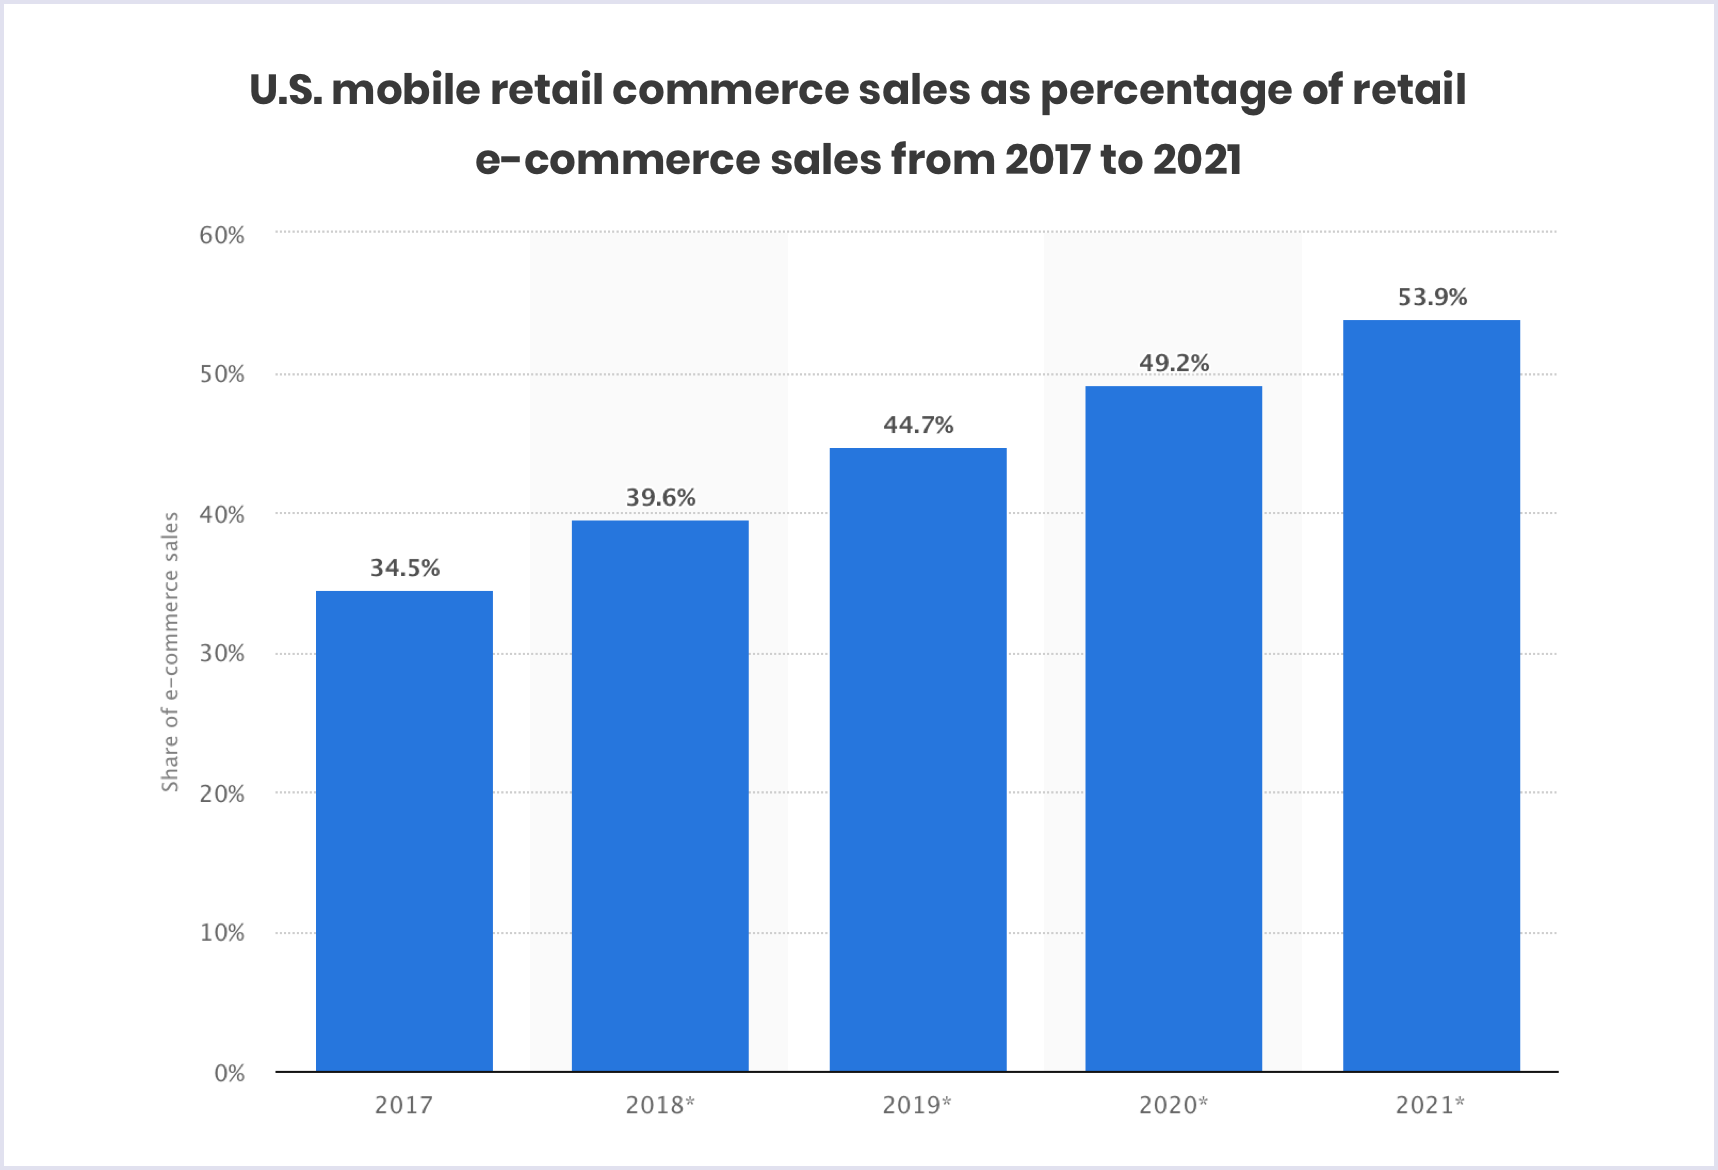 US mobile retail commerce sales as percentage of retail e-commerce sales in 2017-2021 | Codica